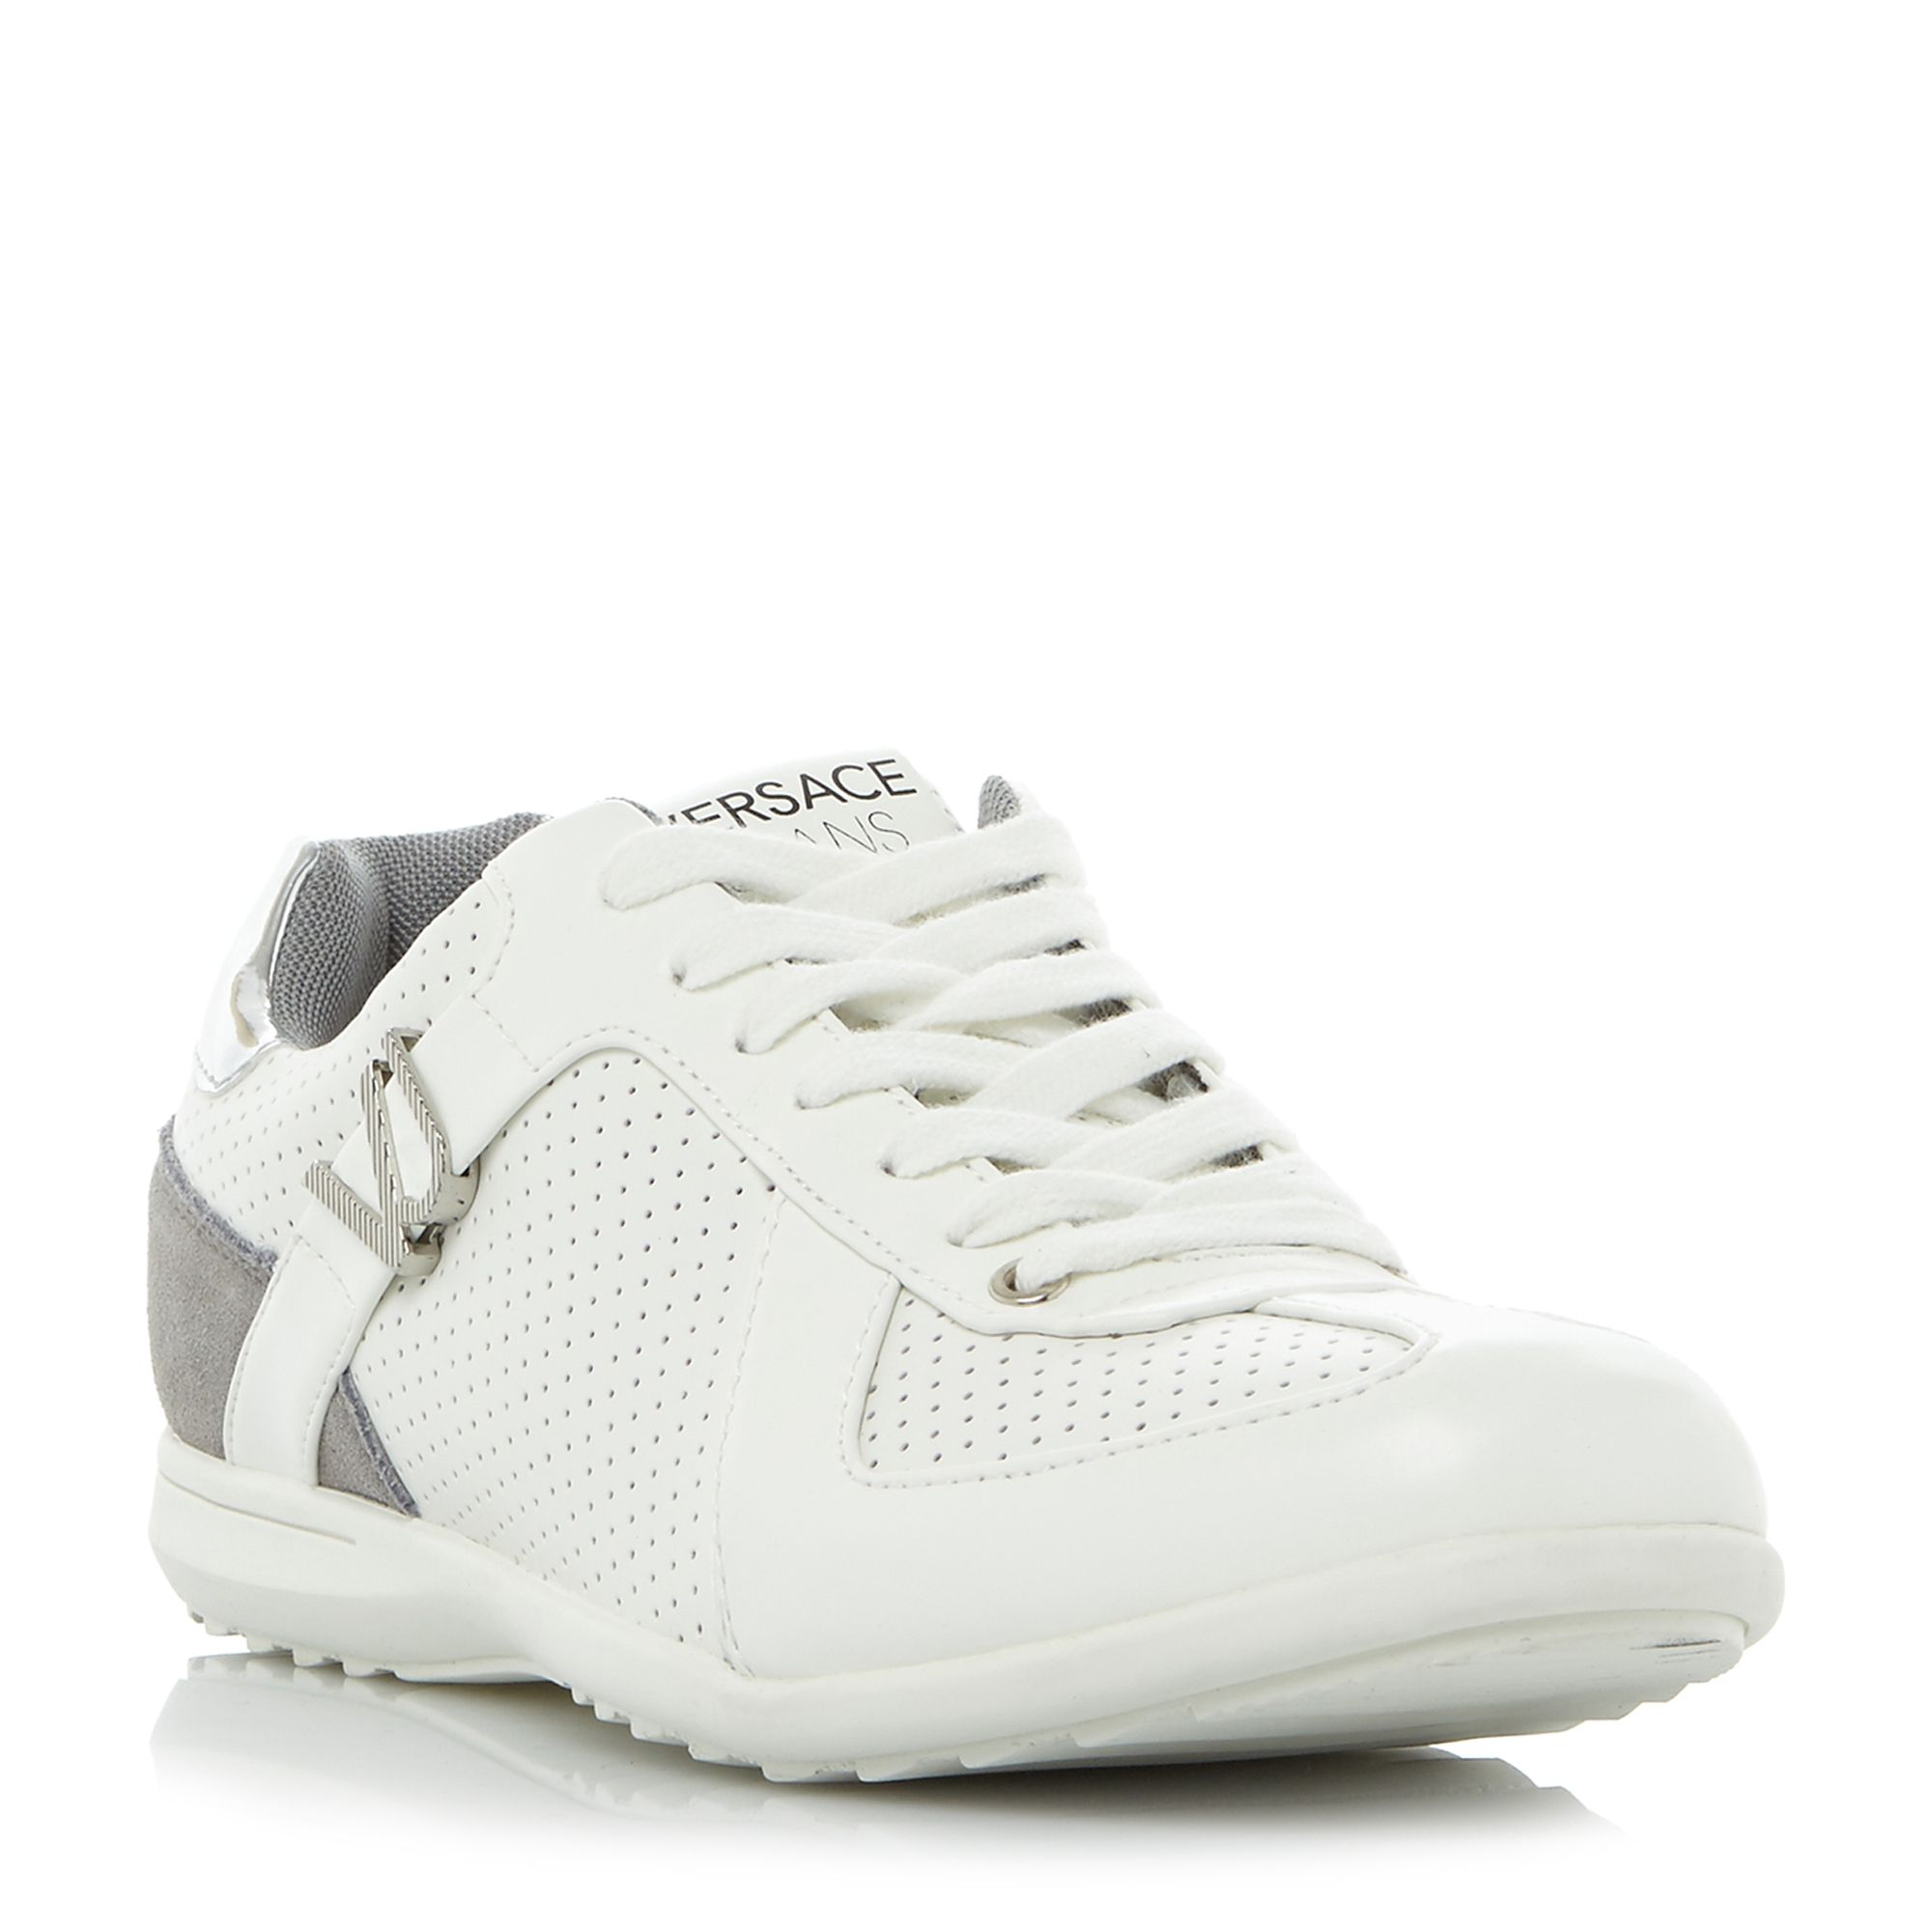 Versace Jeans Versace Jeans Ypbsc1 suede trainers, White